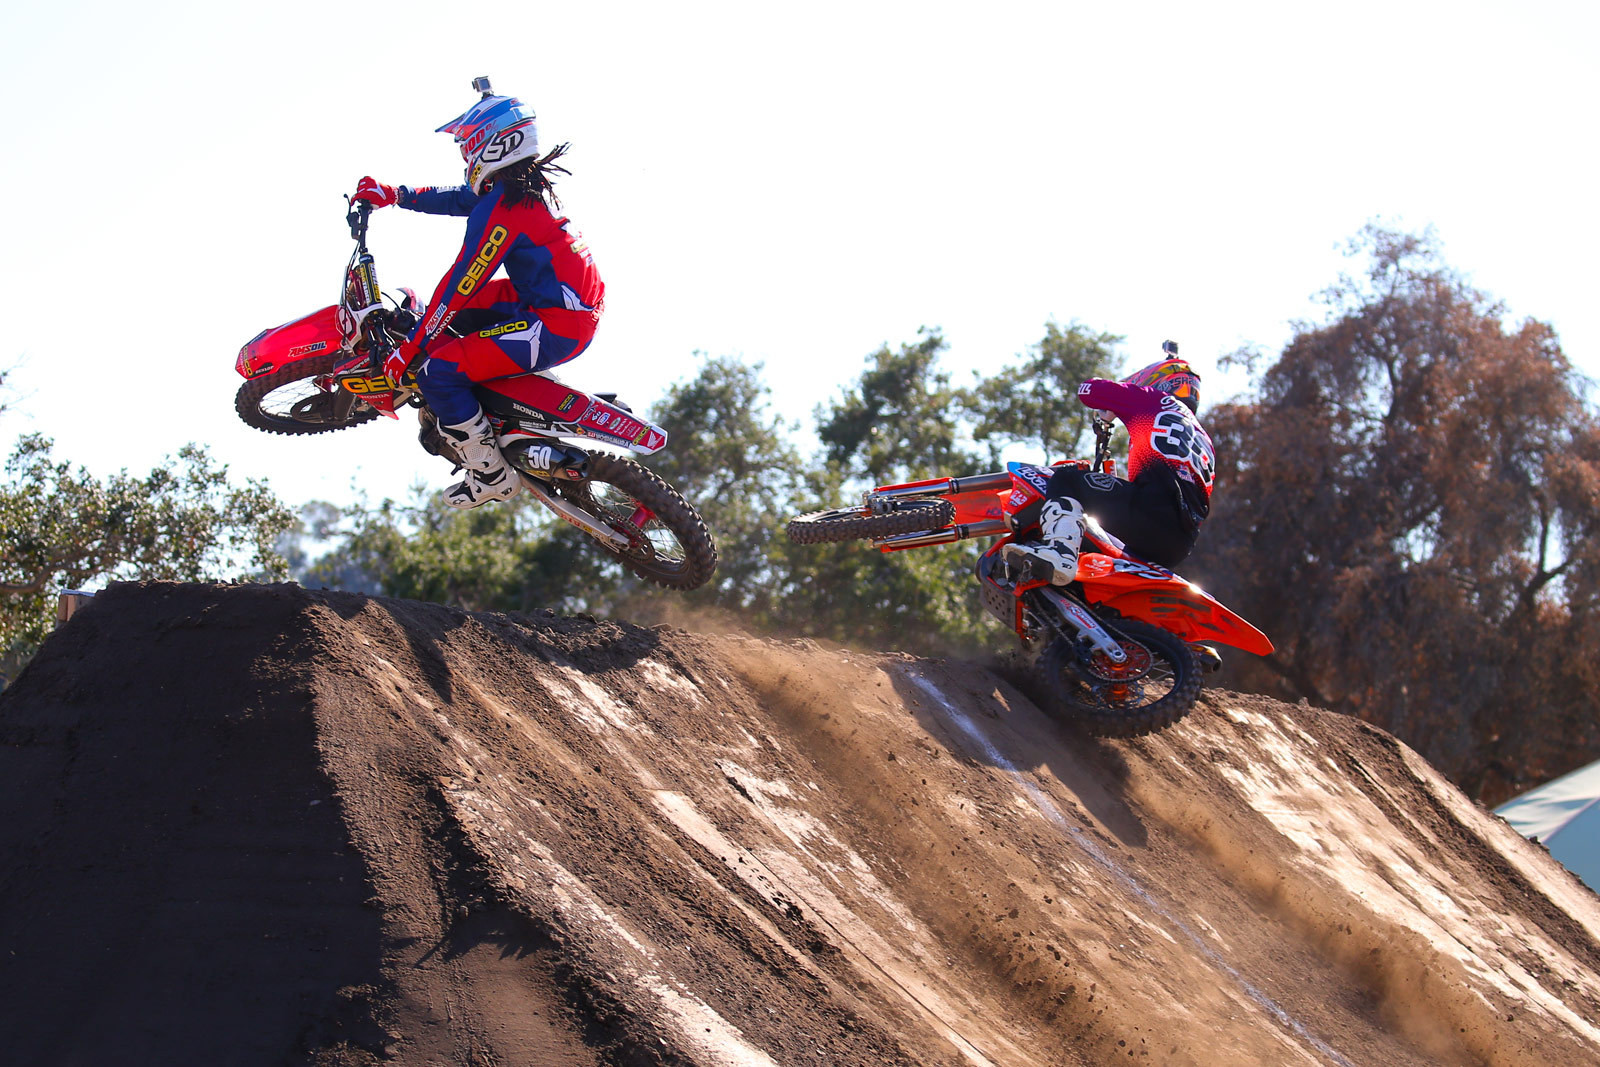 Malcolm Stewart and Shane McElrath - Photo Blast: Red Bull Straight Rhythm - Motocross Pictures - Vital MX